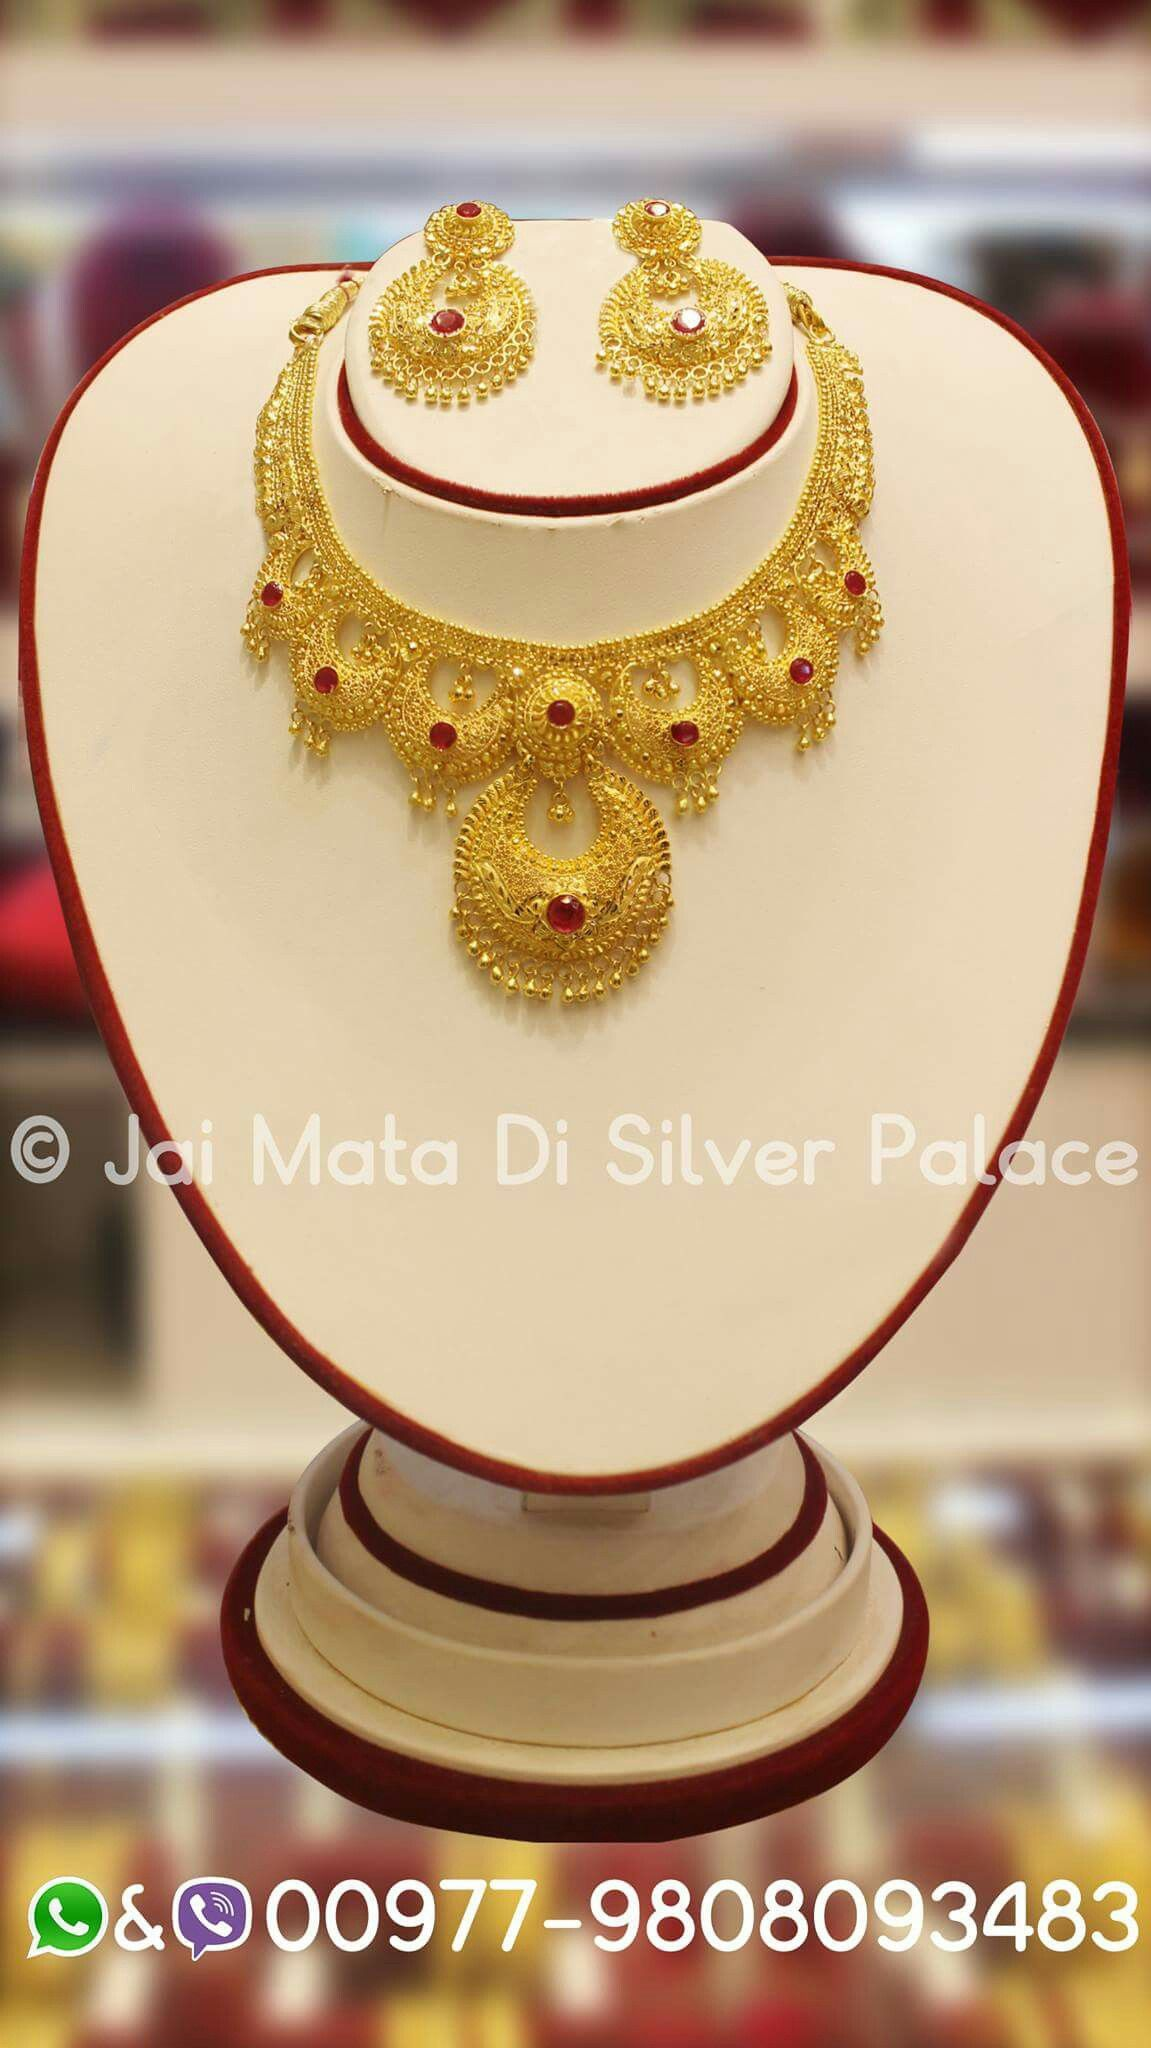 Lovely gold jewelry design | My culture | Pinterest | Gold jewellery ...